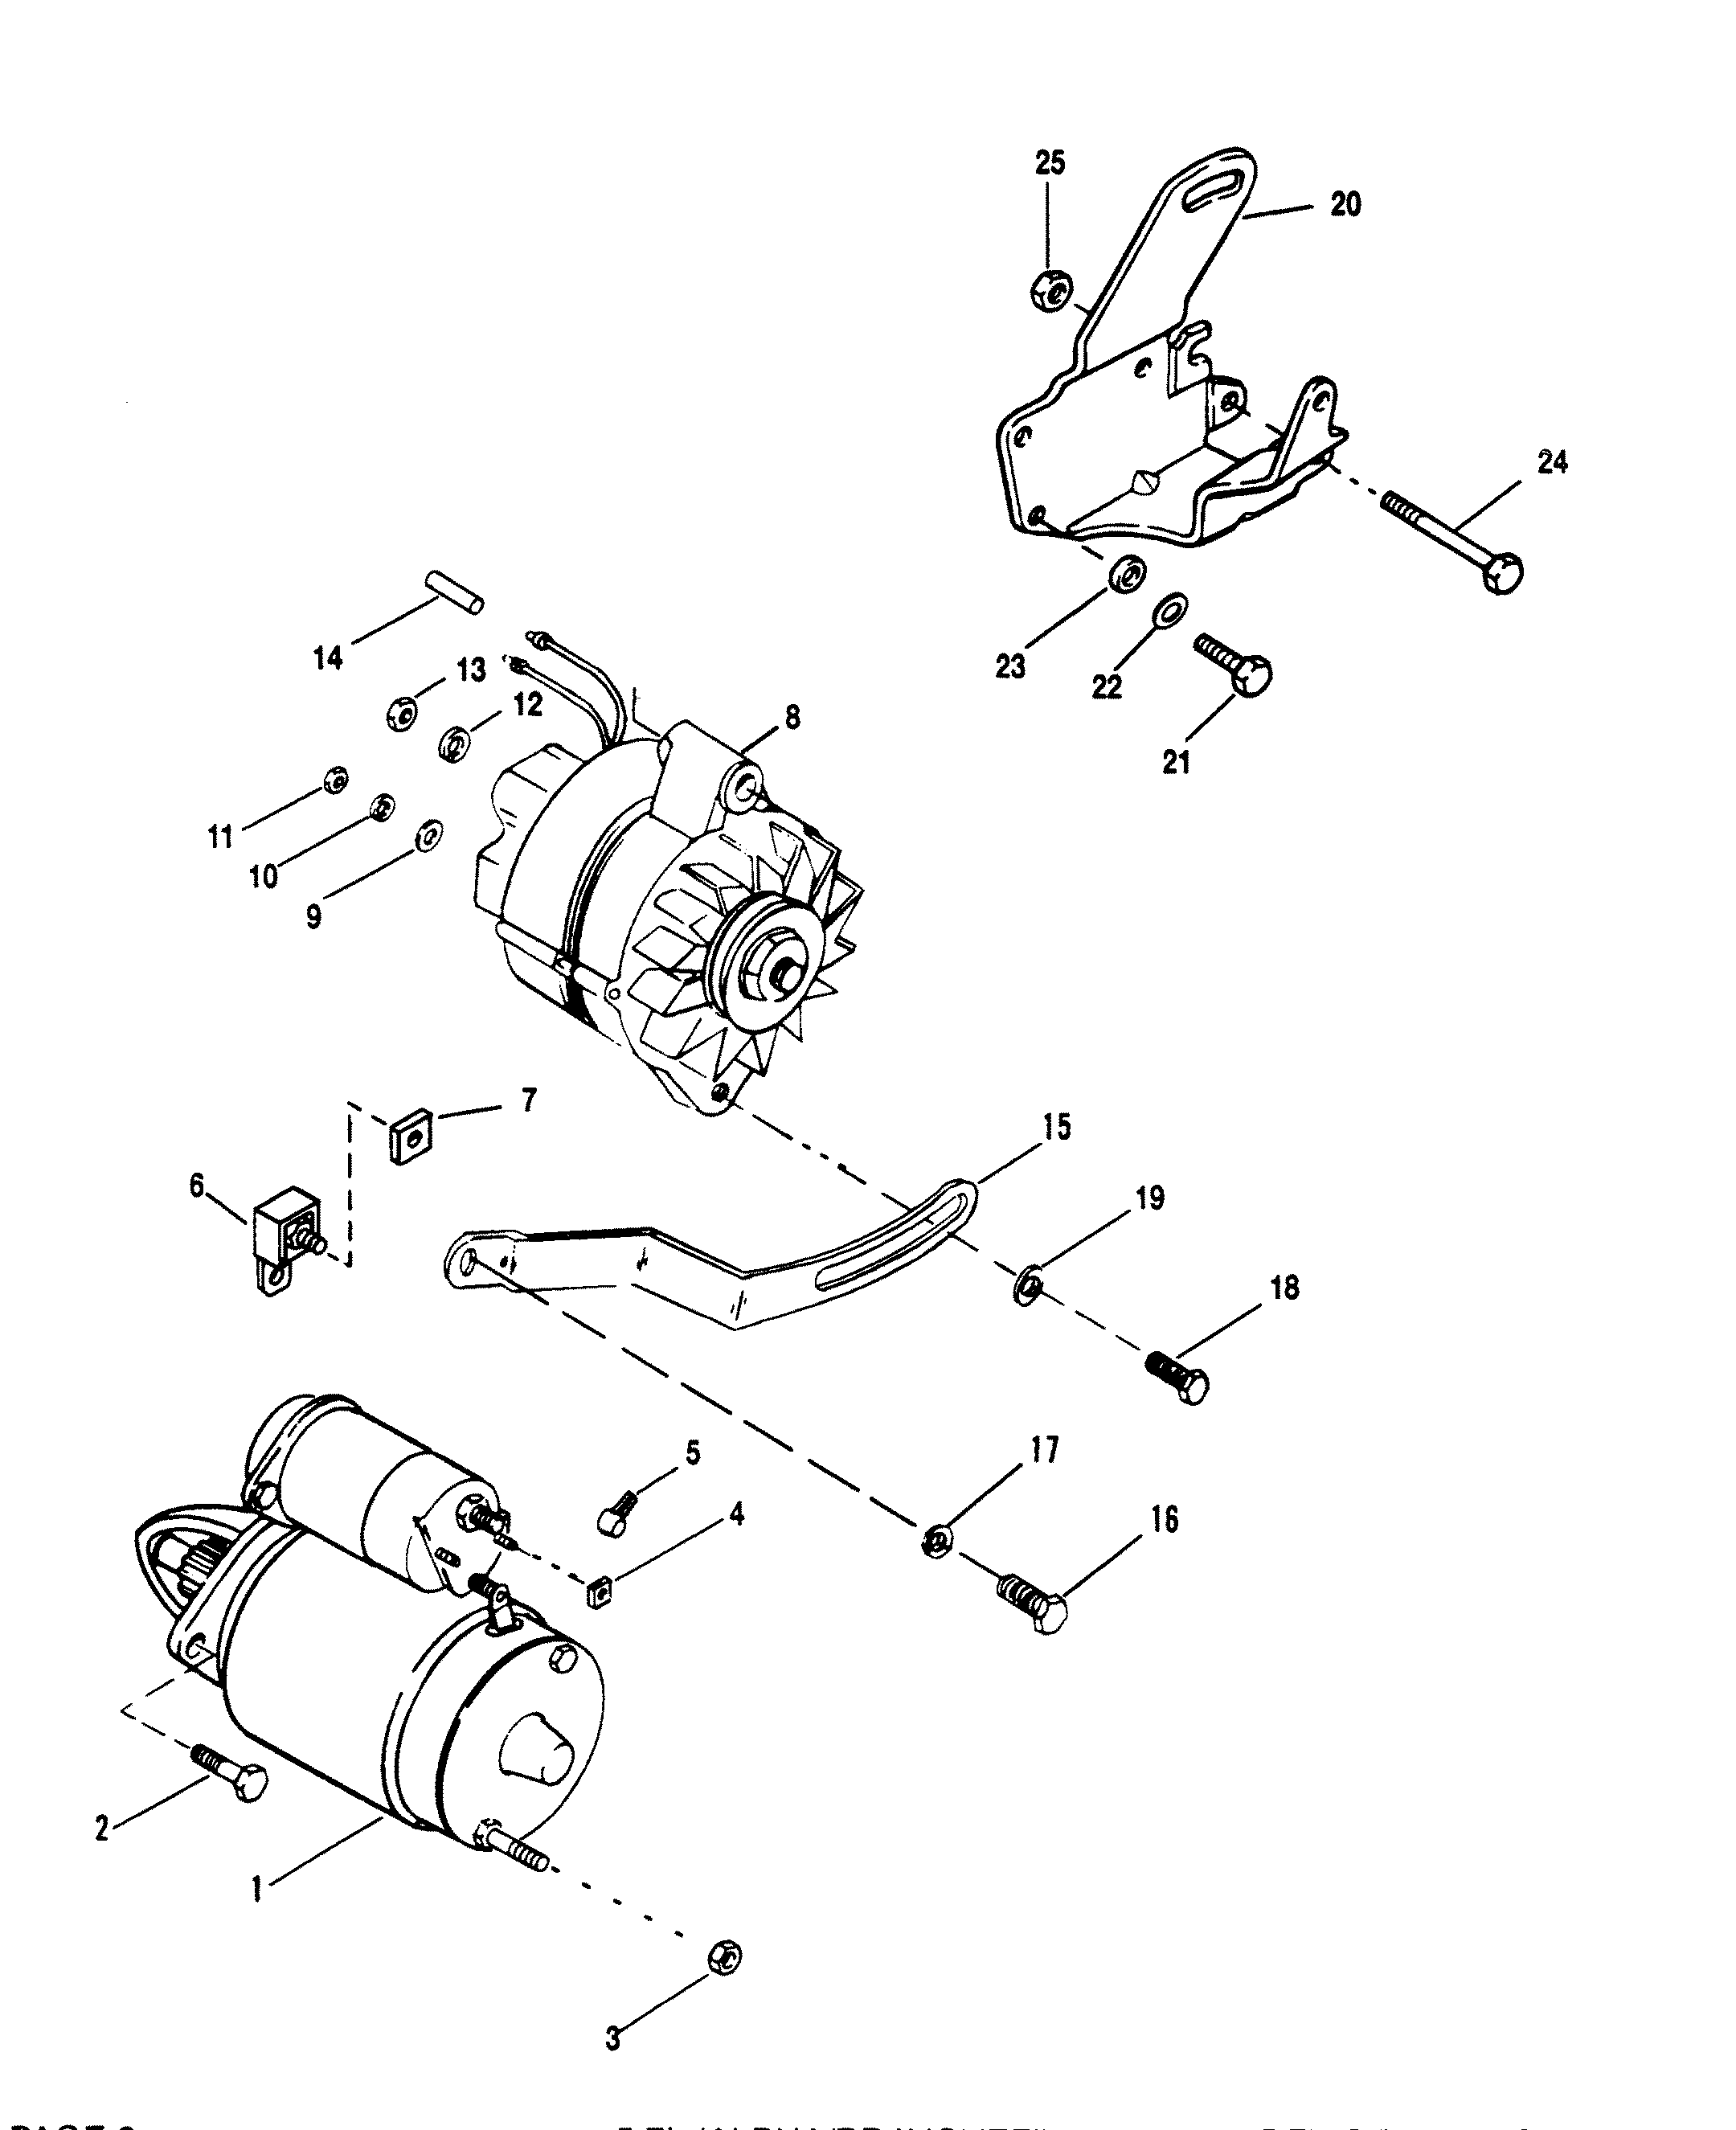 ... 6bta 5 9 6cta 8 3 Mechanical Engine Wiring Diagrams as well  371378585445 together with Mercruiser ...